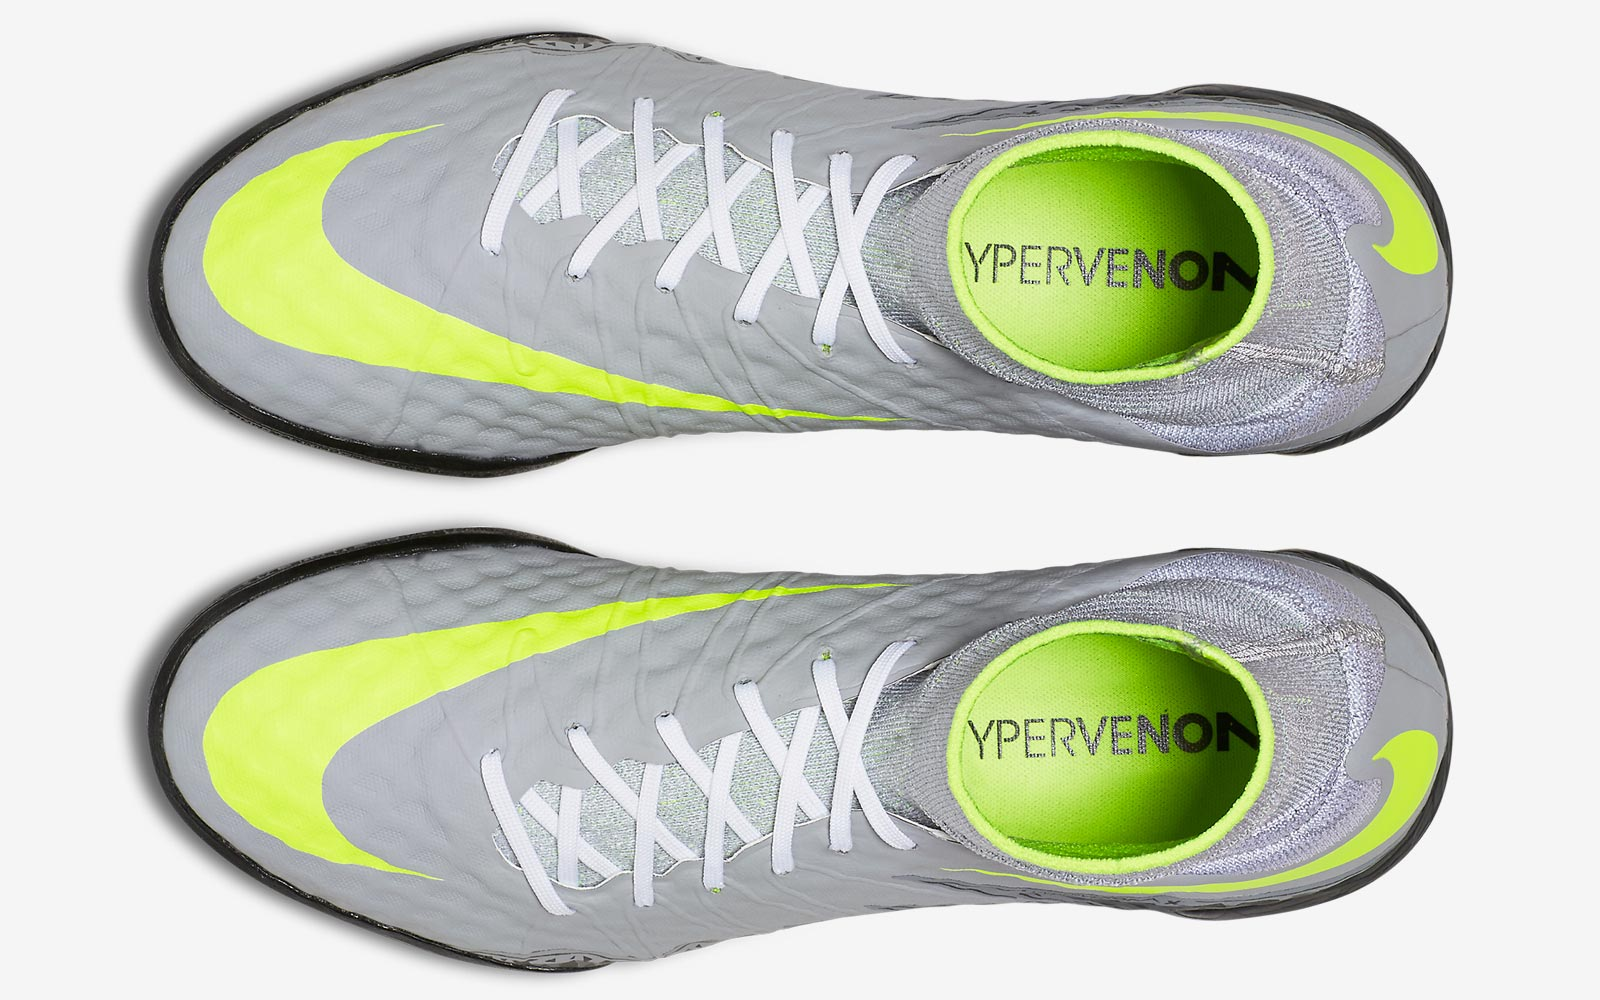 graue nike hypervenomx proximo 2016 2017 fu ballschuhe. Black Bedroom Furniture Sets. Home Design Ideas